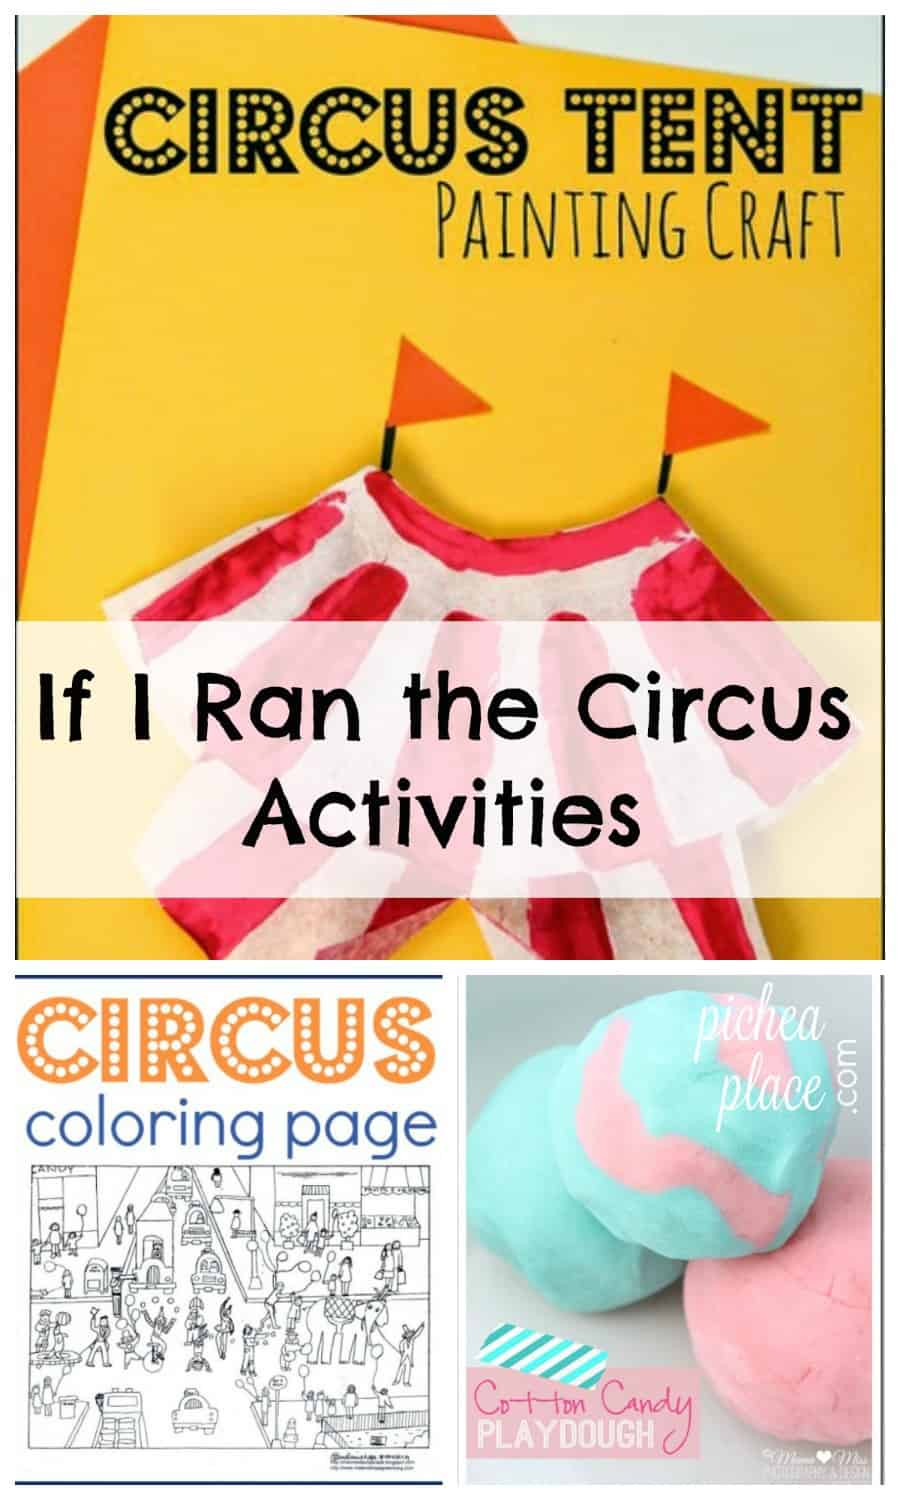 If I Ran the Circus activities for kids | Dr Seuss activities for kids